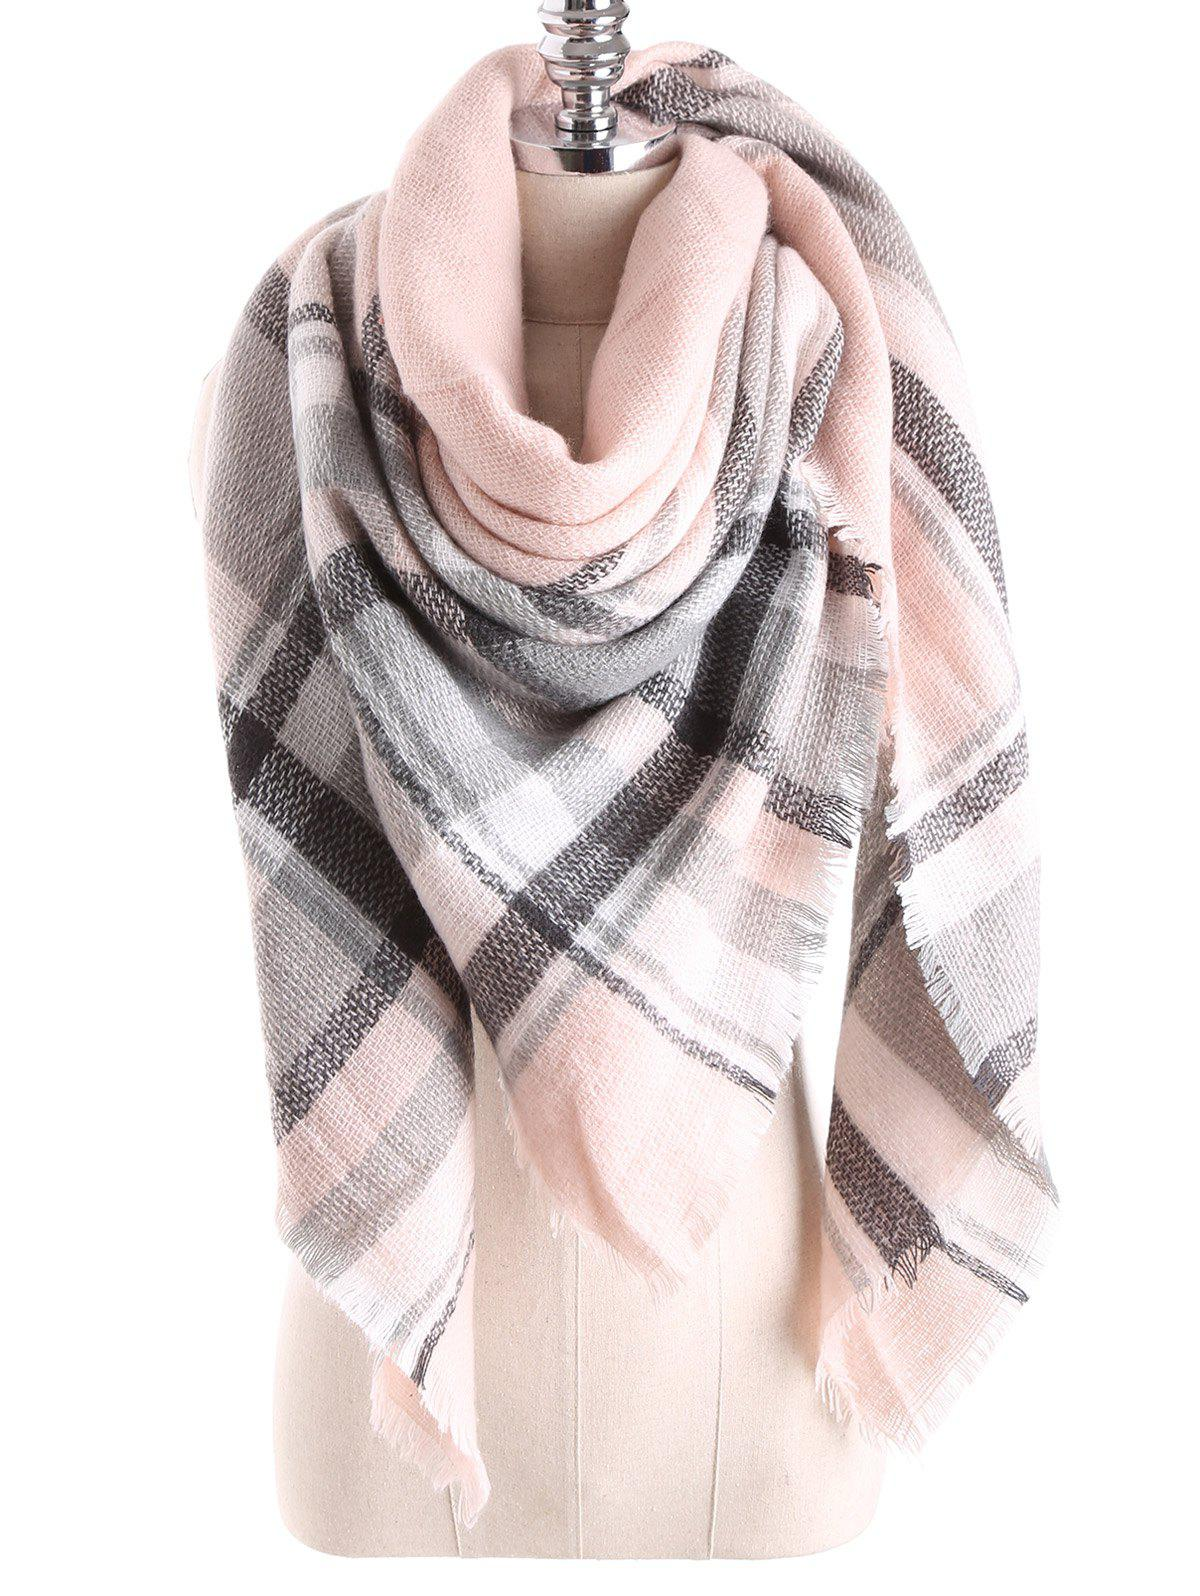 pearl light pink warm tartan plaid blanket shawl scarf. Black Bedroom Furniture Sets. Home Design Ideas